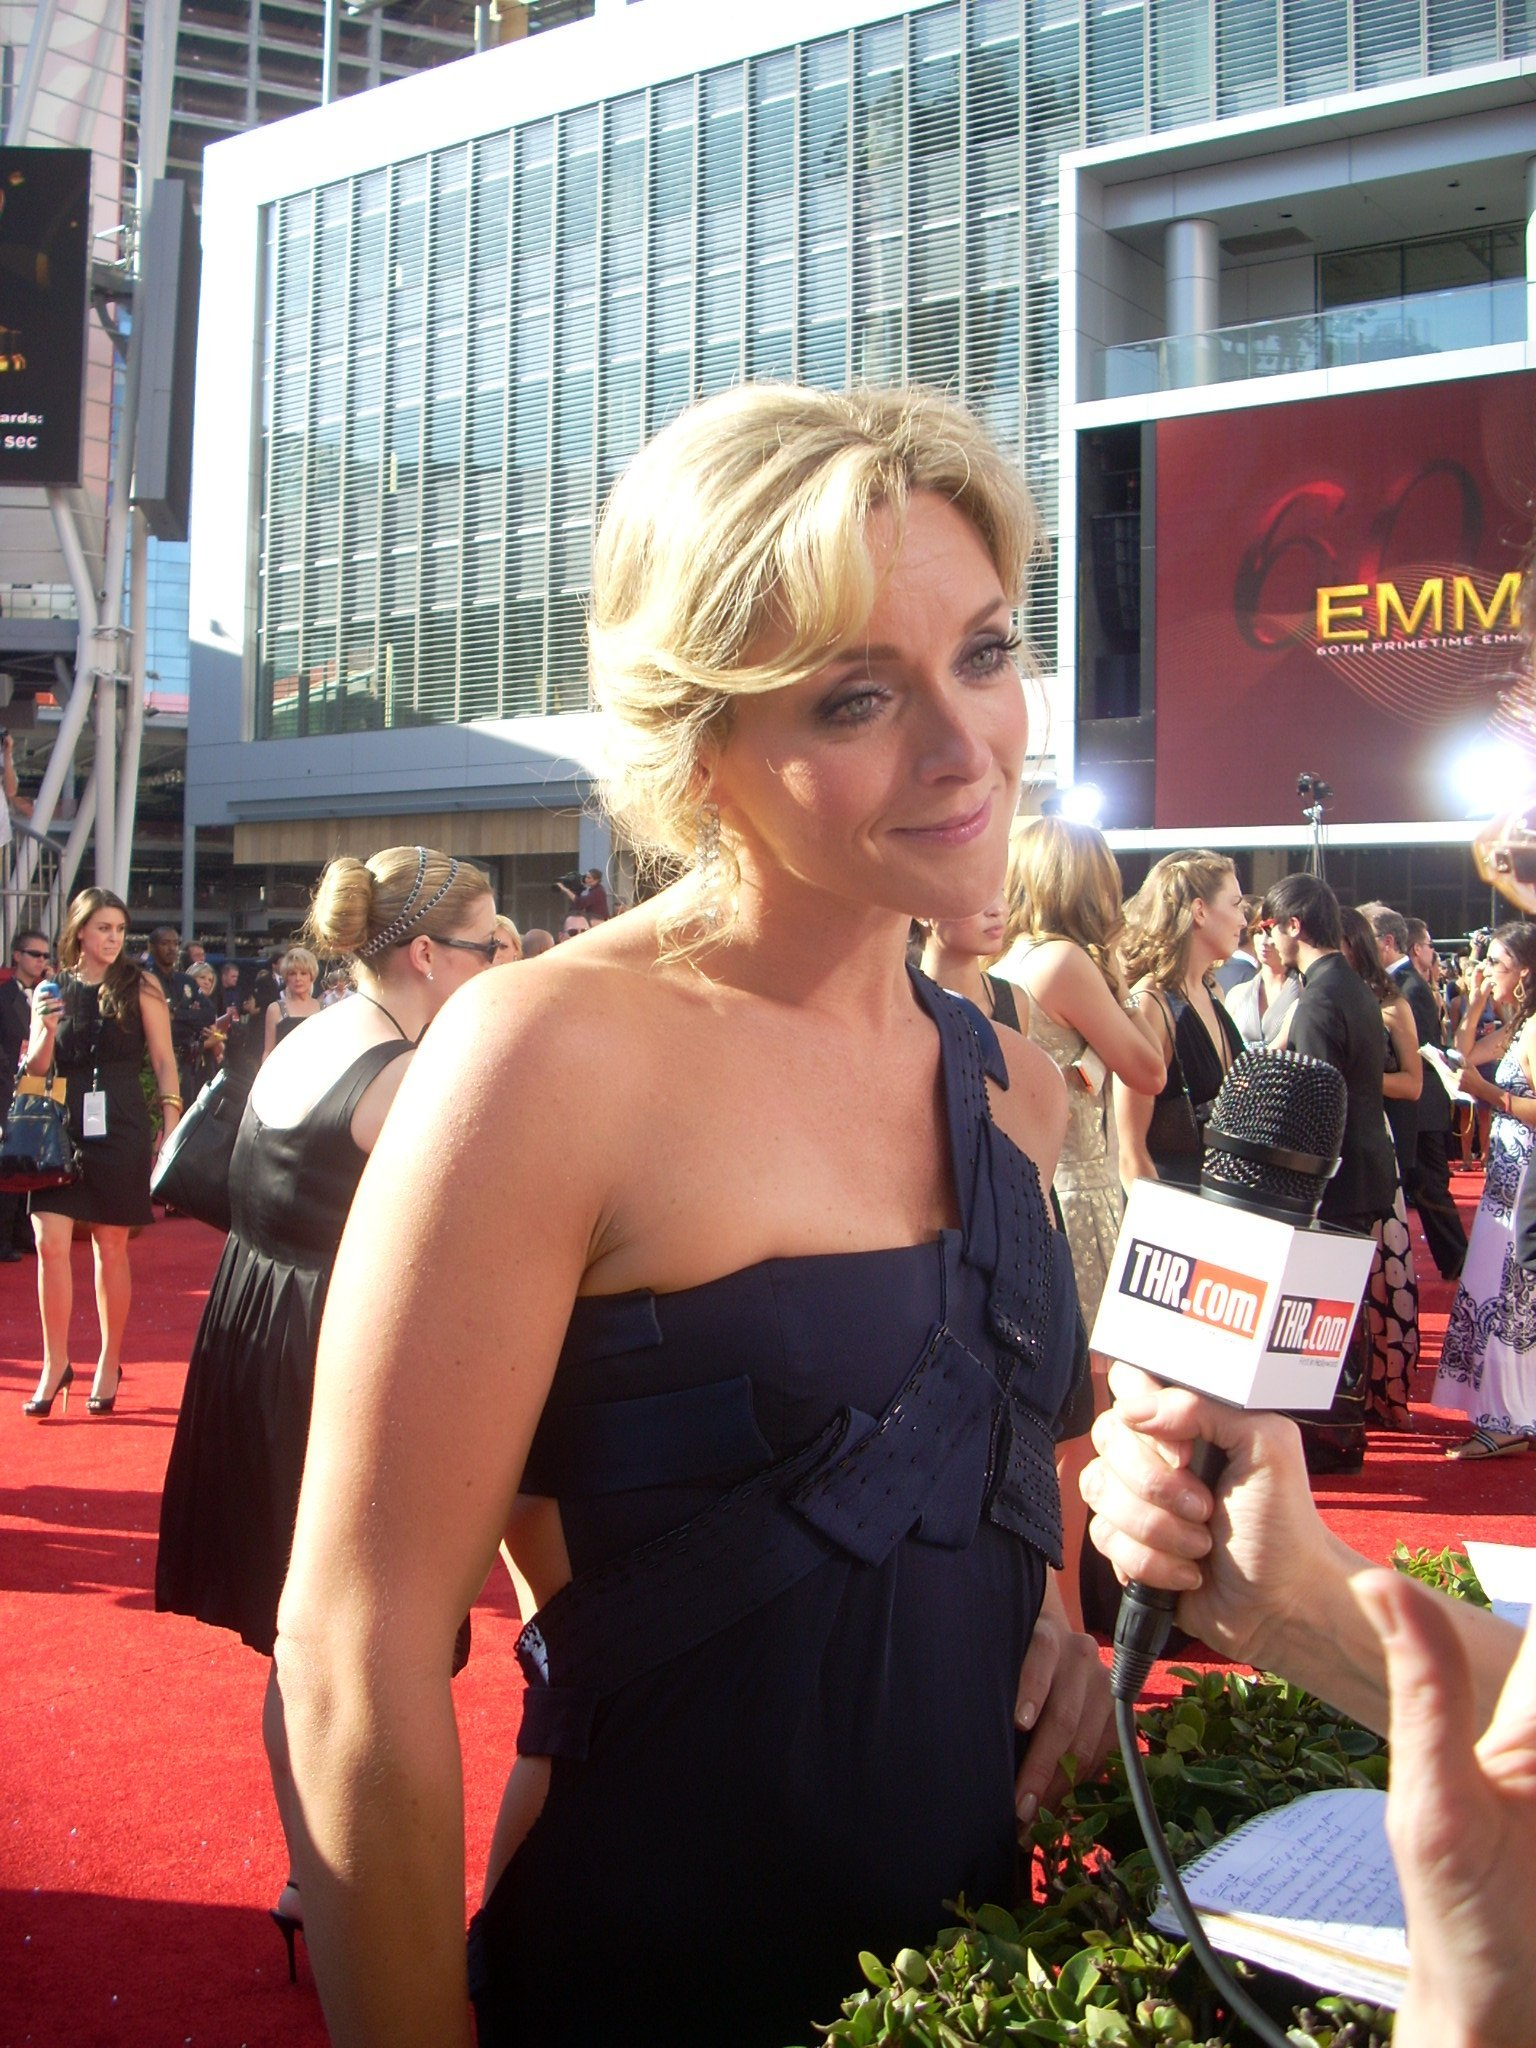 Jane Krakowski on the red carpet of the 60th Annual Emmy Awards in Los Angeles, California on September 21, 2008 | Photo: Wikimedia Commons